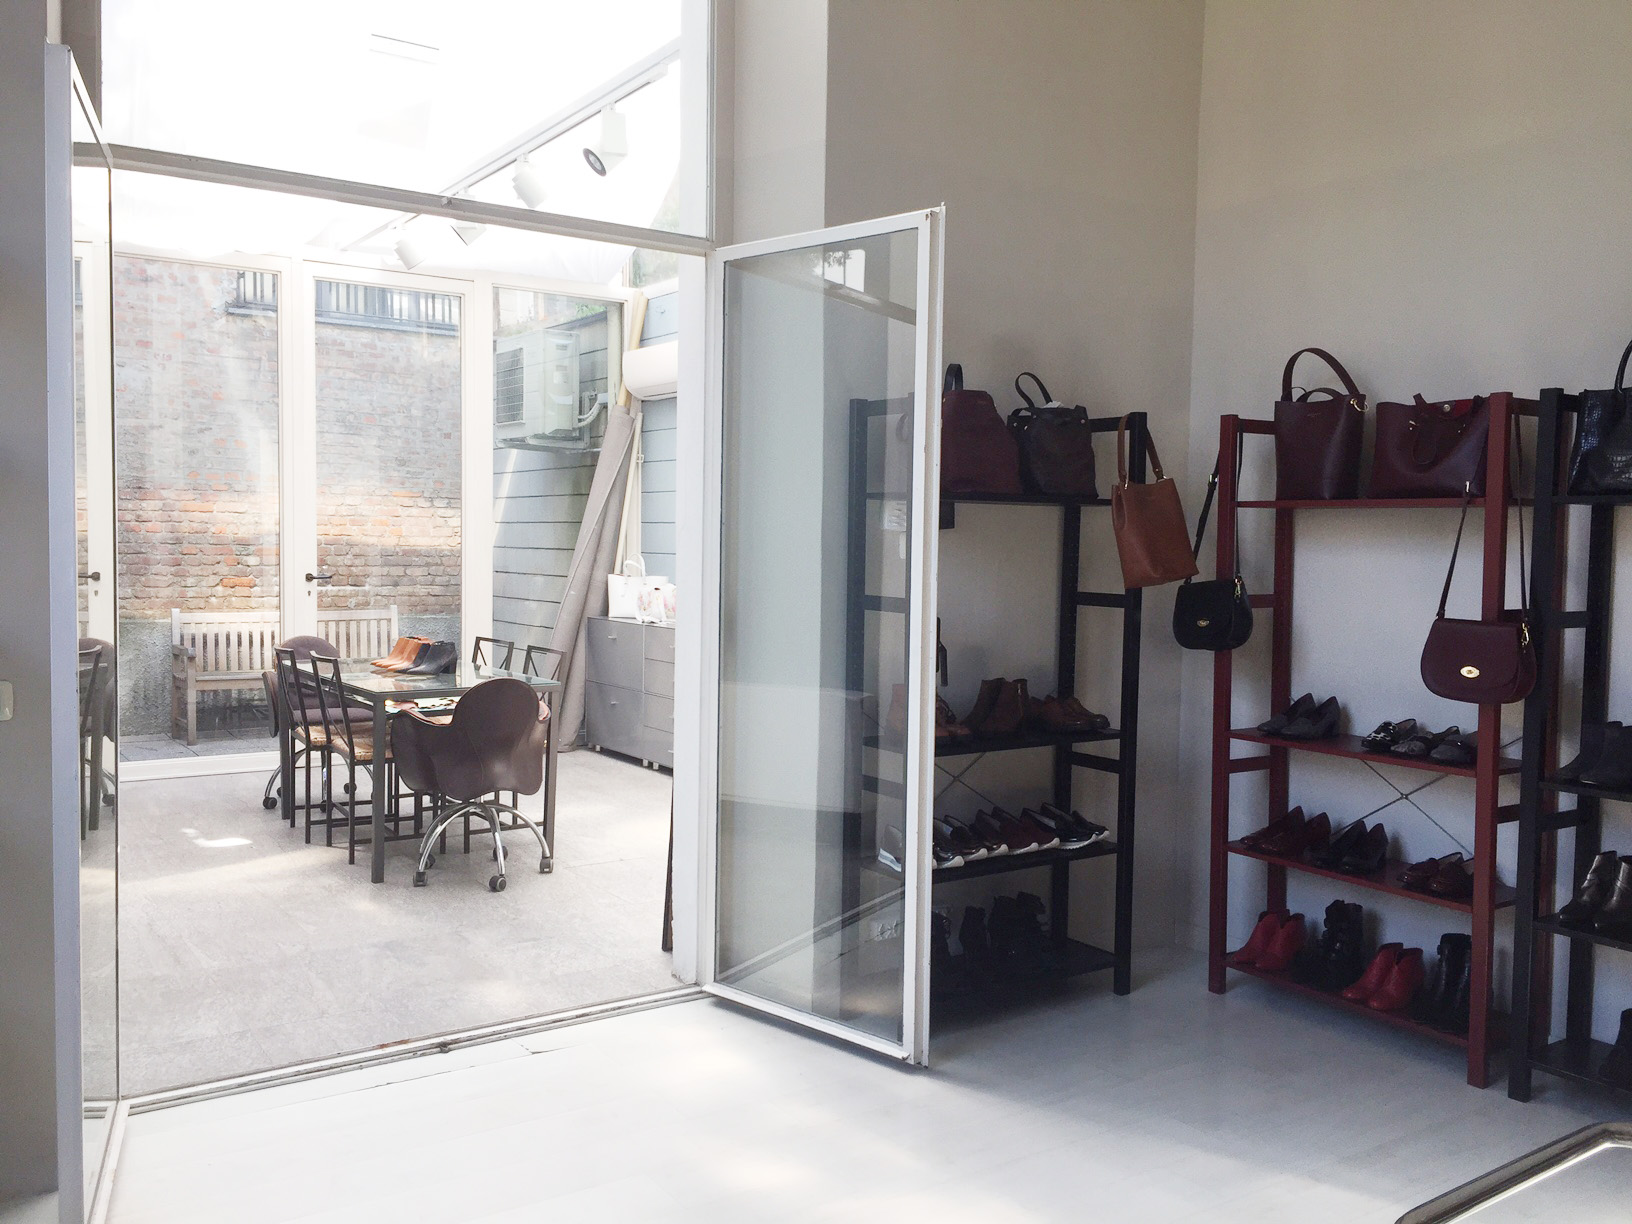 Sgamo showroom - Laboratorio, Showroom, Spazio eventi di 60mq in Via Tortona 31  | location allestita 5